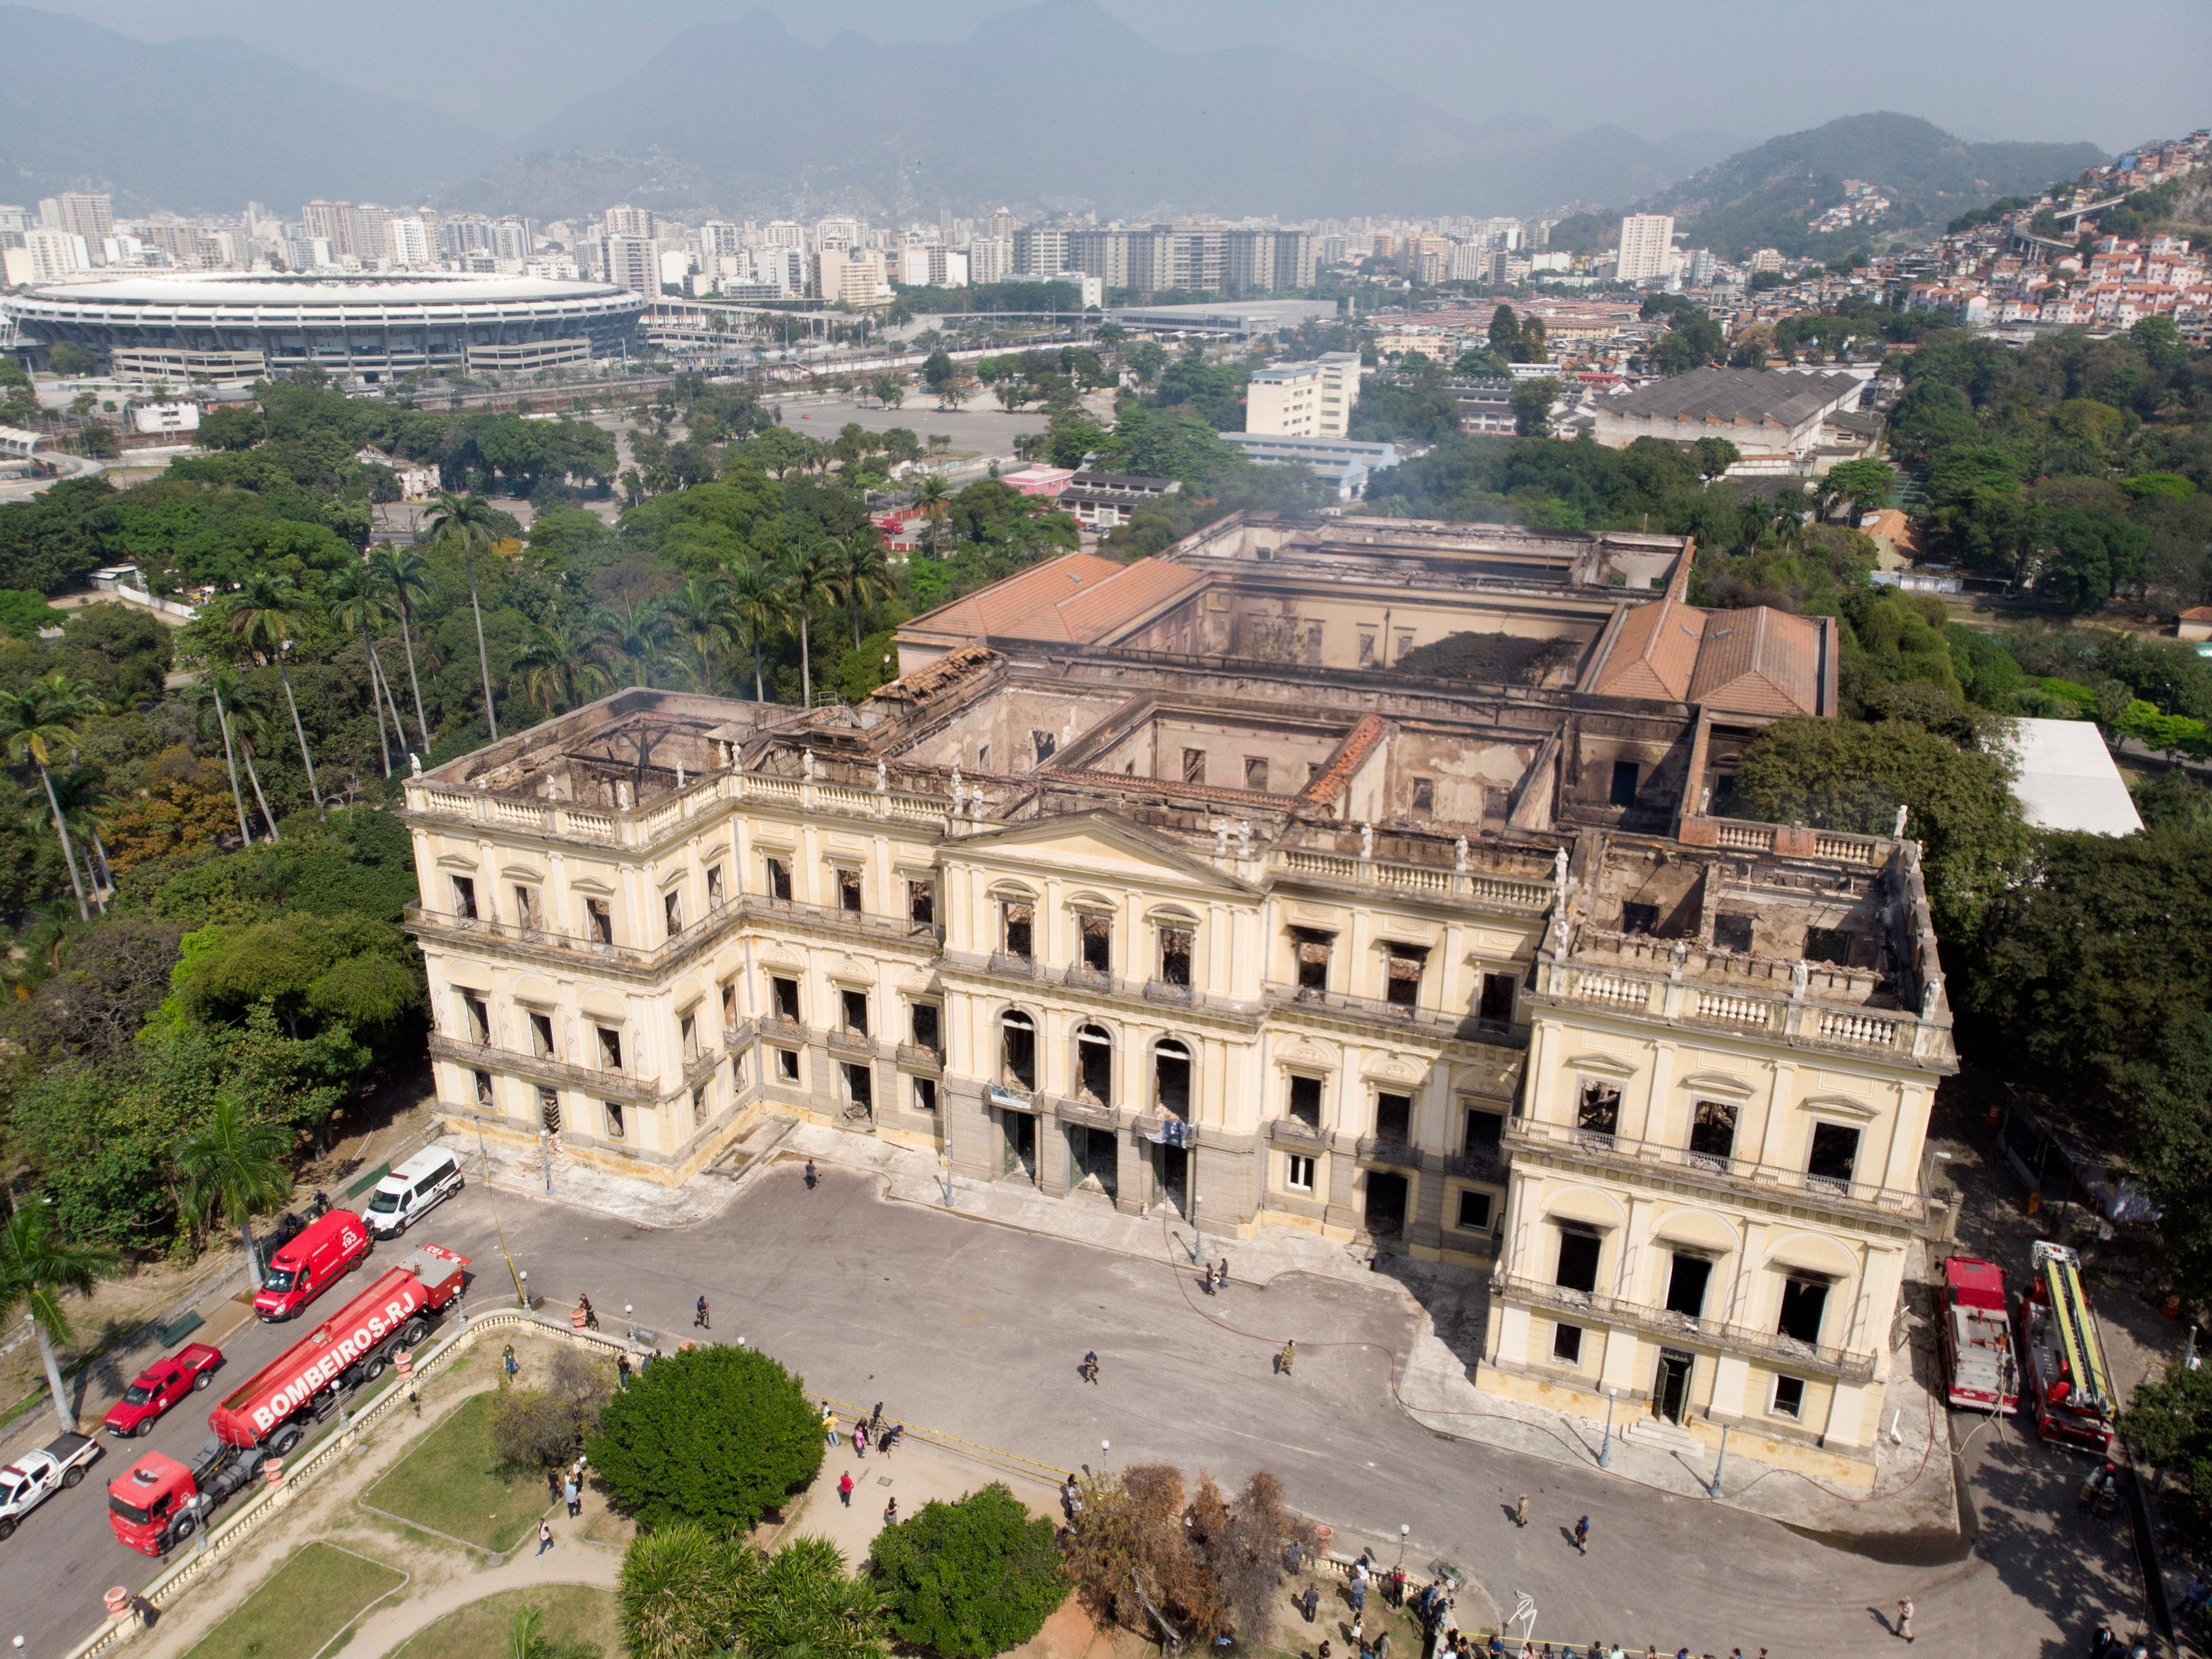 Fire trucks sit parked outside the National Museum after it was gutted by an overnight fire in Rio de Janeiro, Brazil, Monday, Sept. 3, 2018.